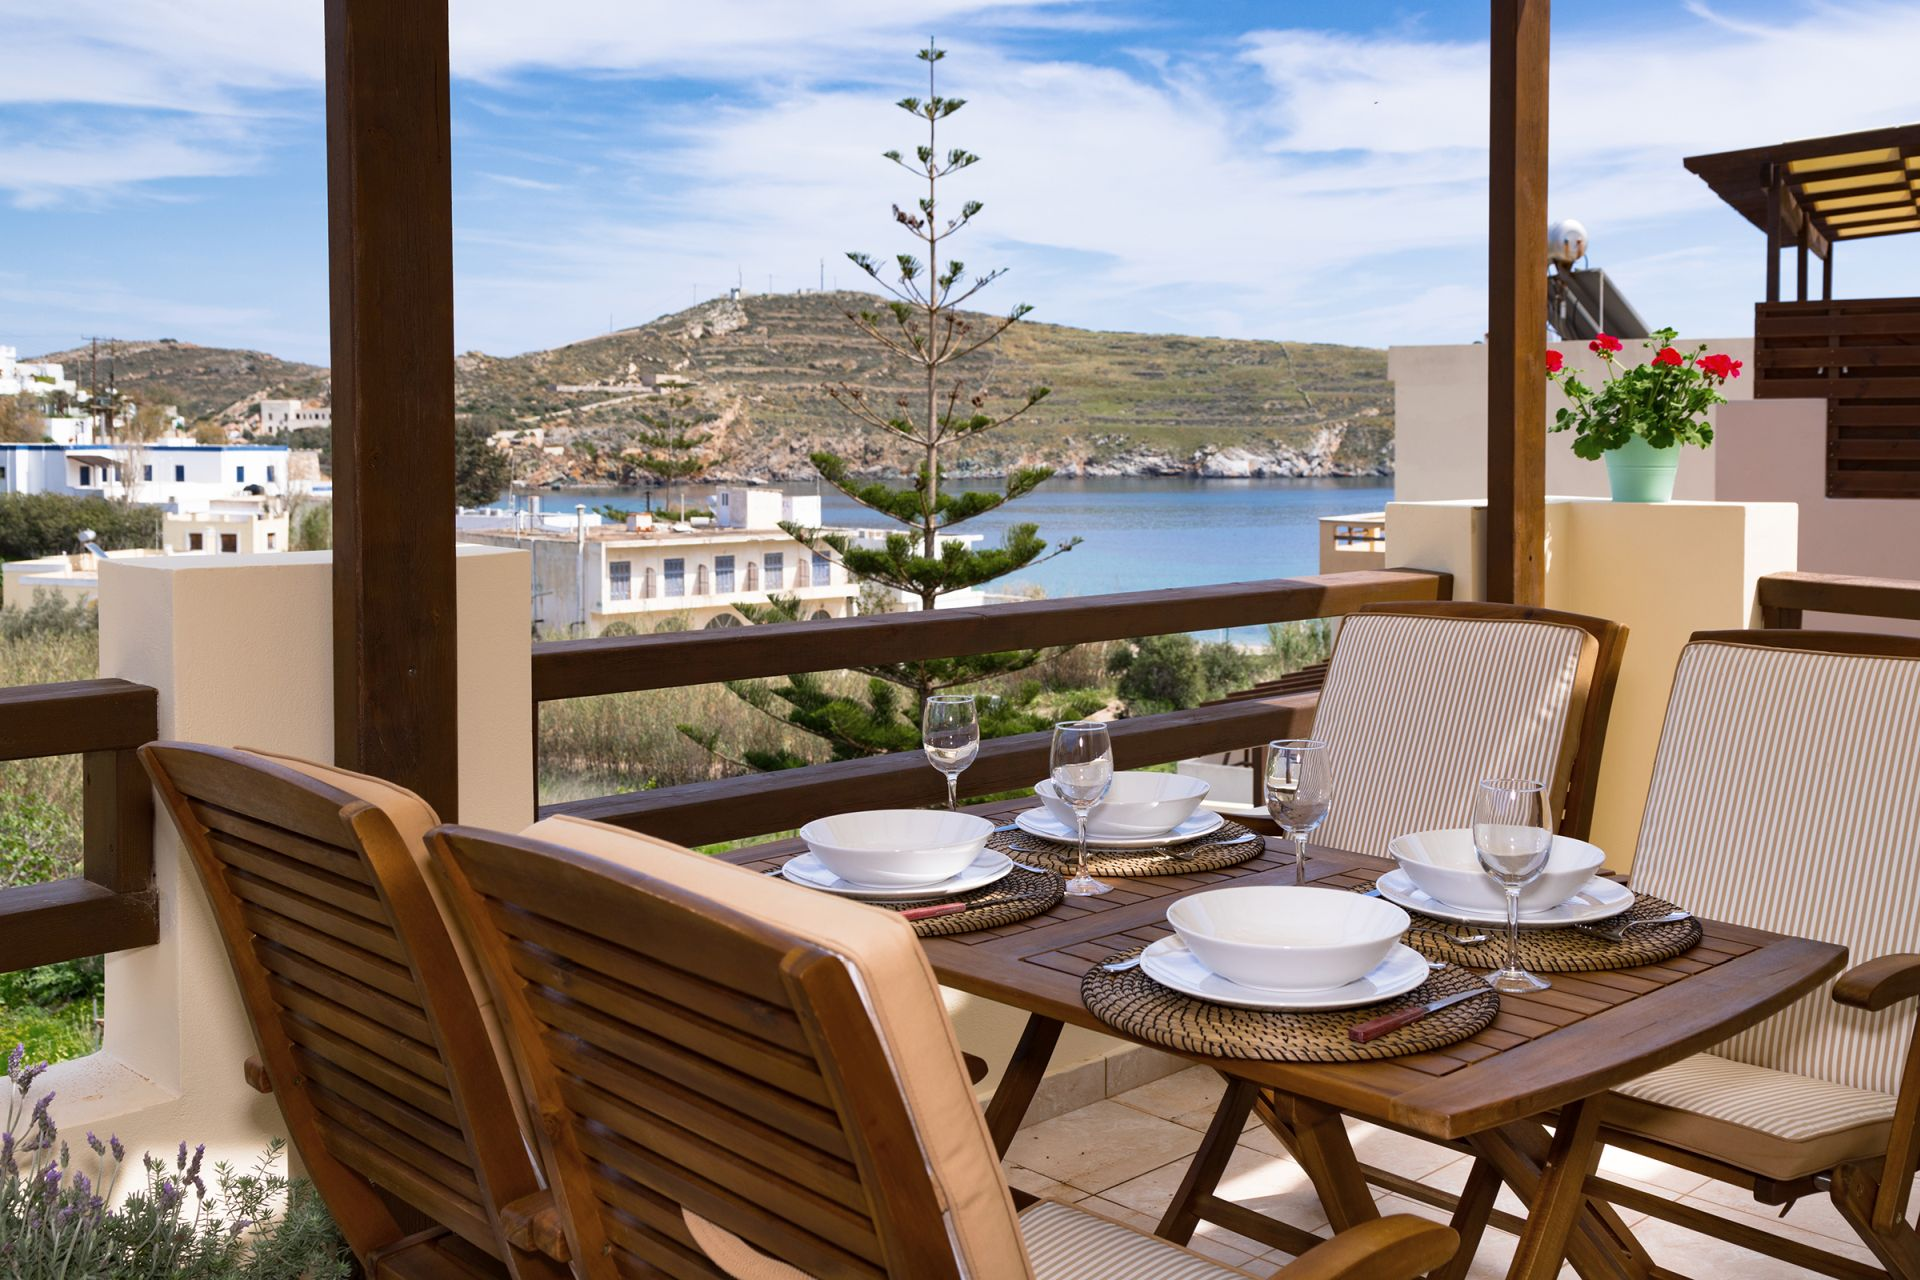 sea-view-veranda-syros.jpg